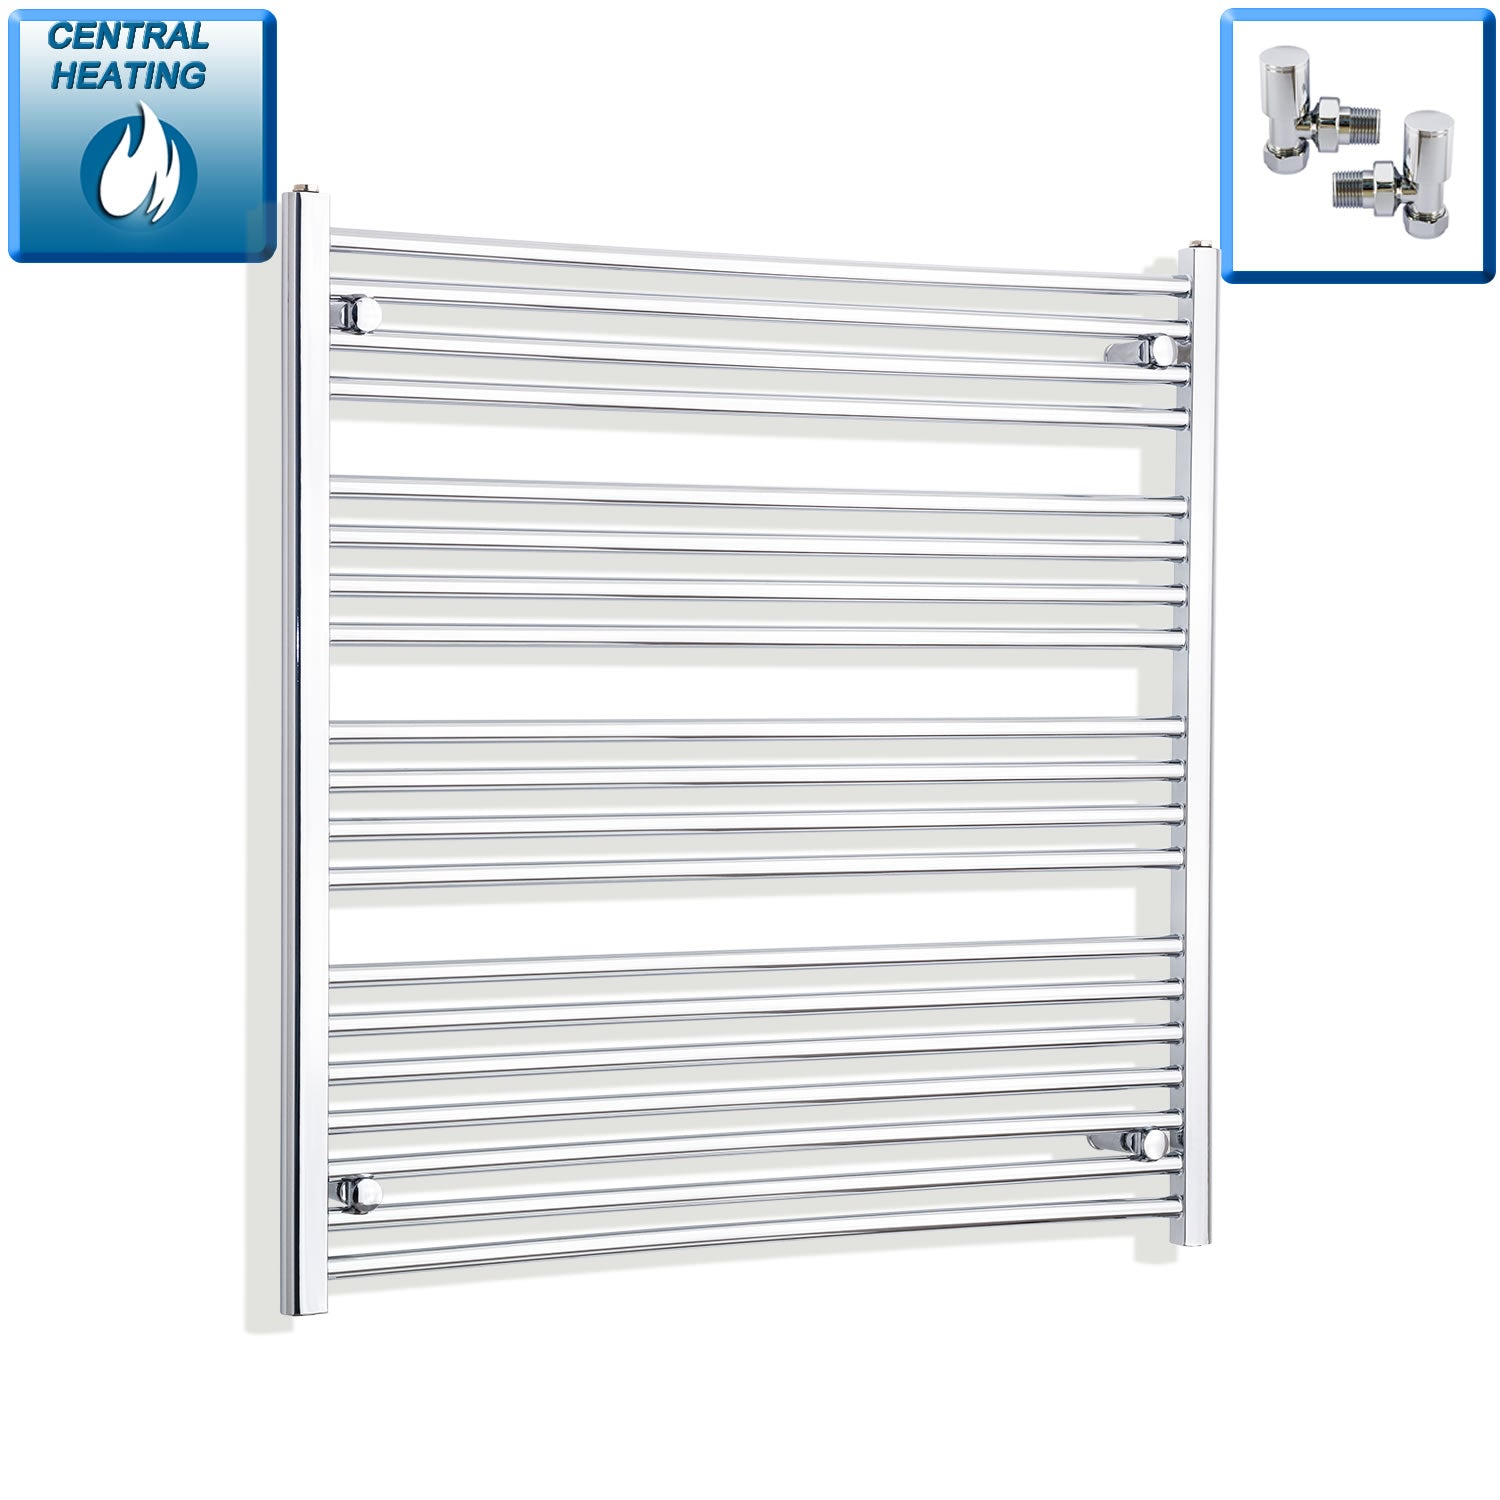 1200mm Wide 900mm High Chrome Towel Rail Radiator With Angled Valve